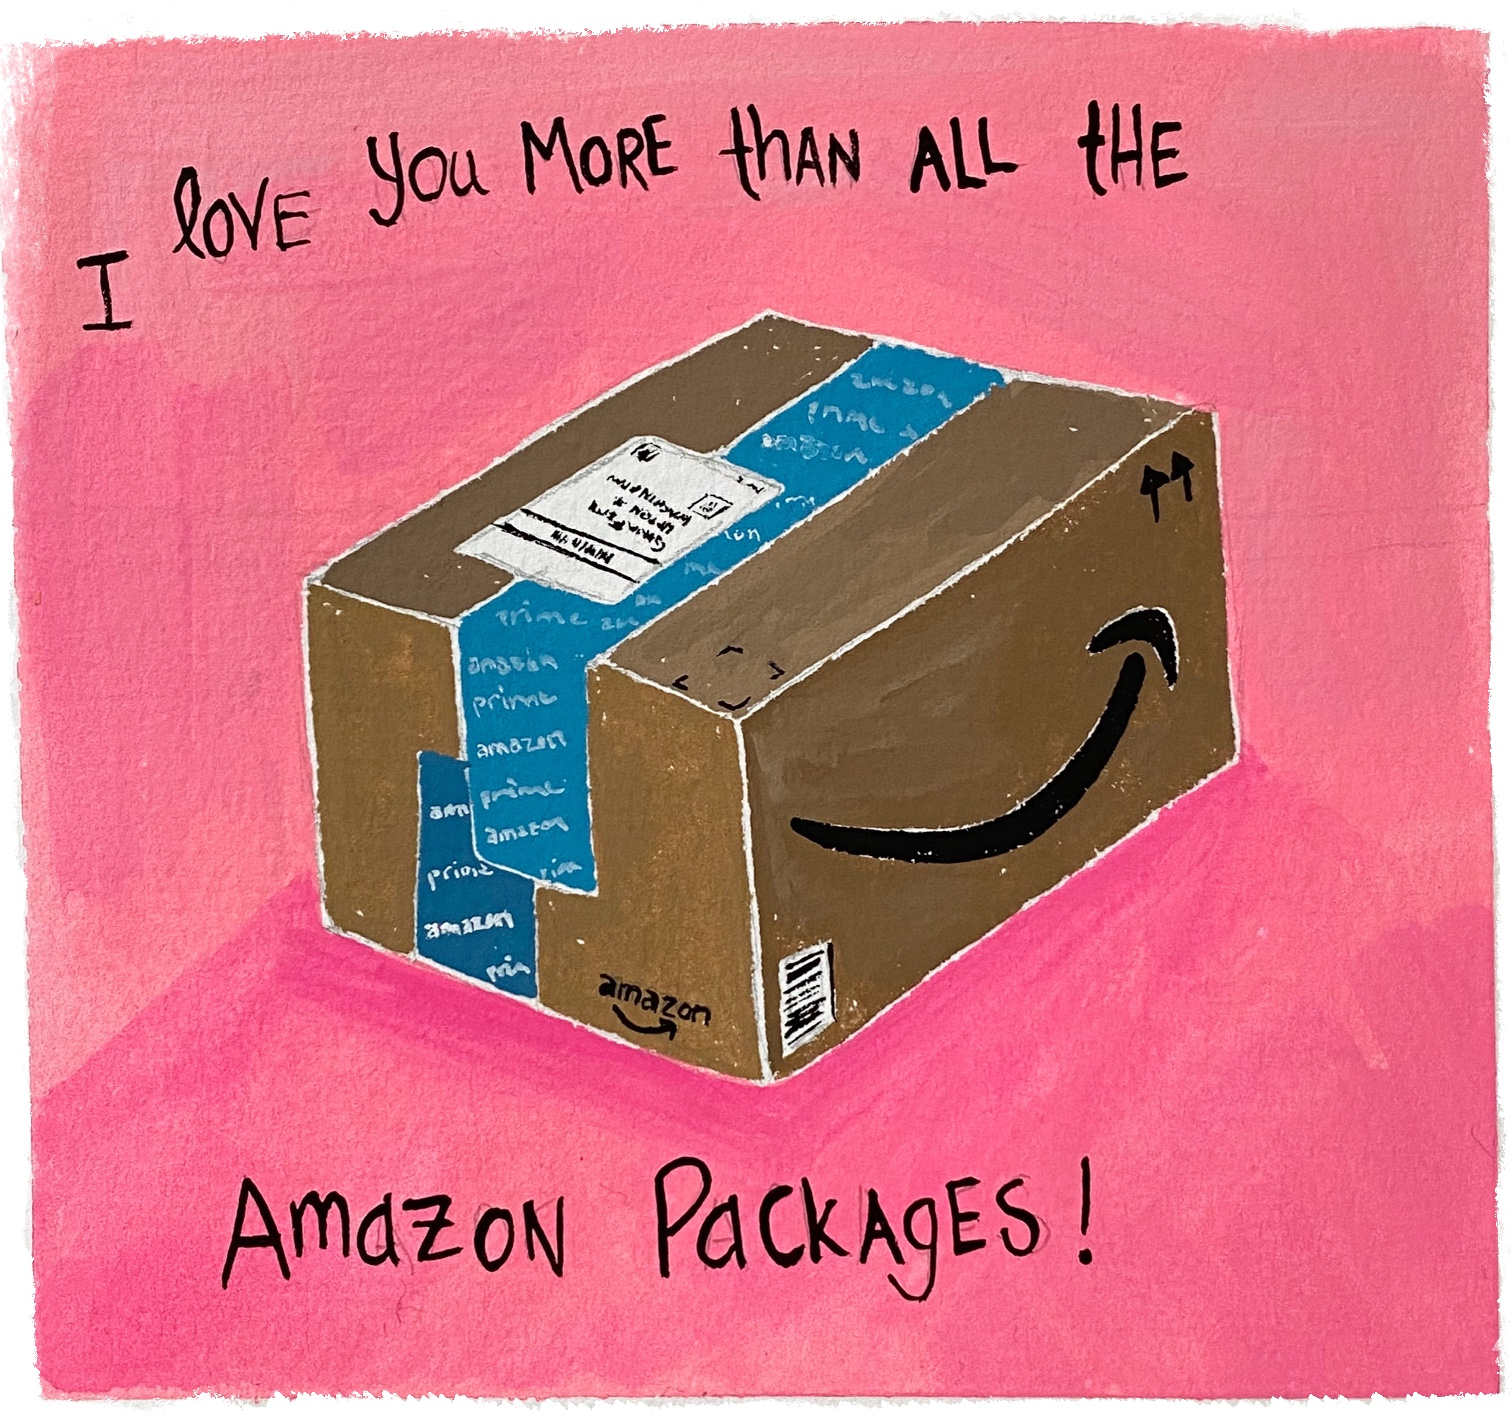 I love you more than all the Amazon Packages